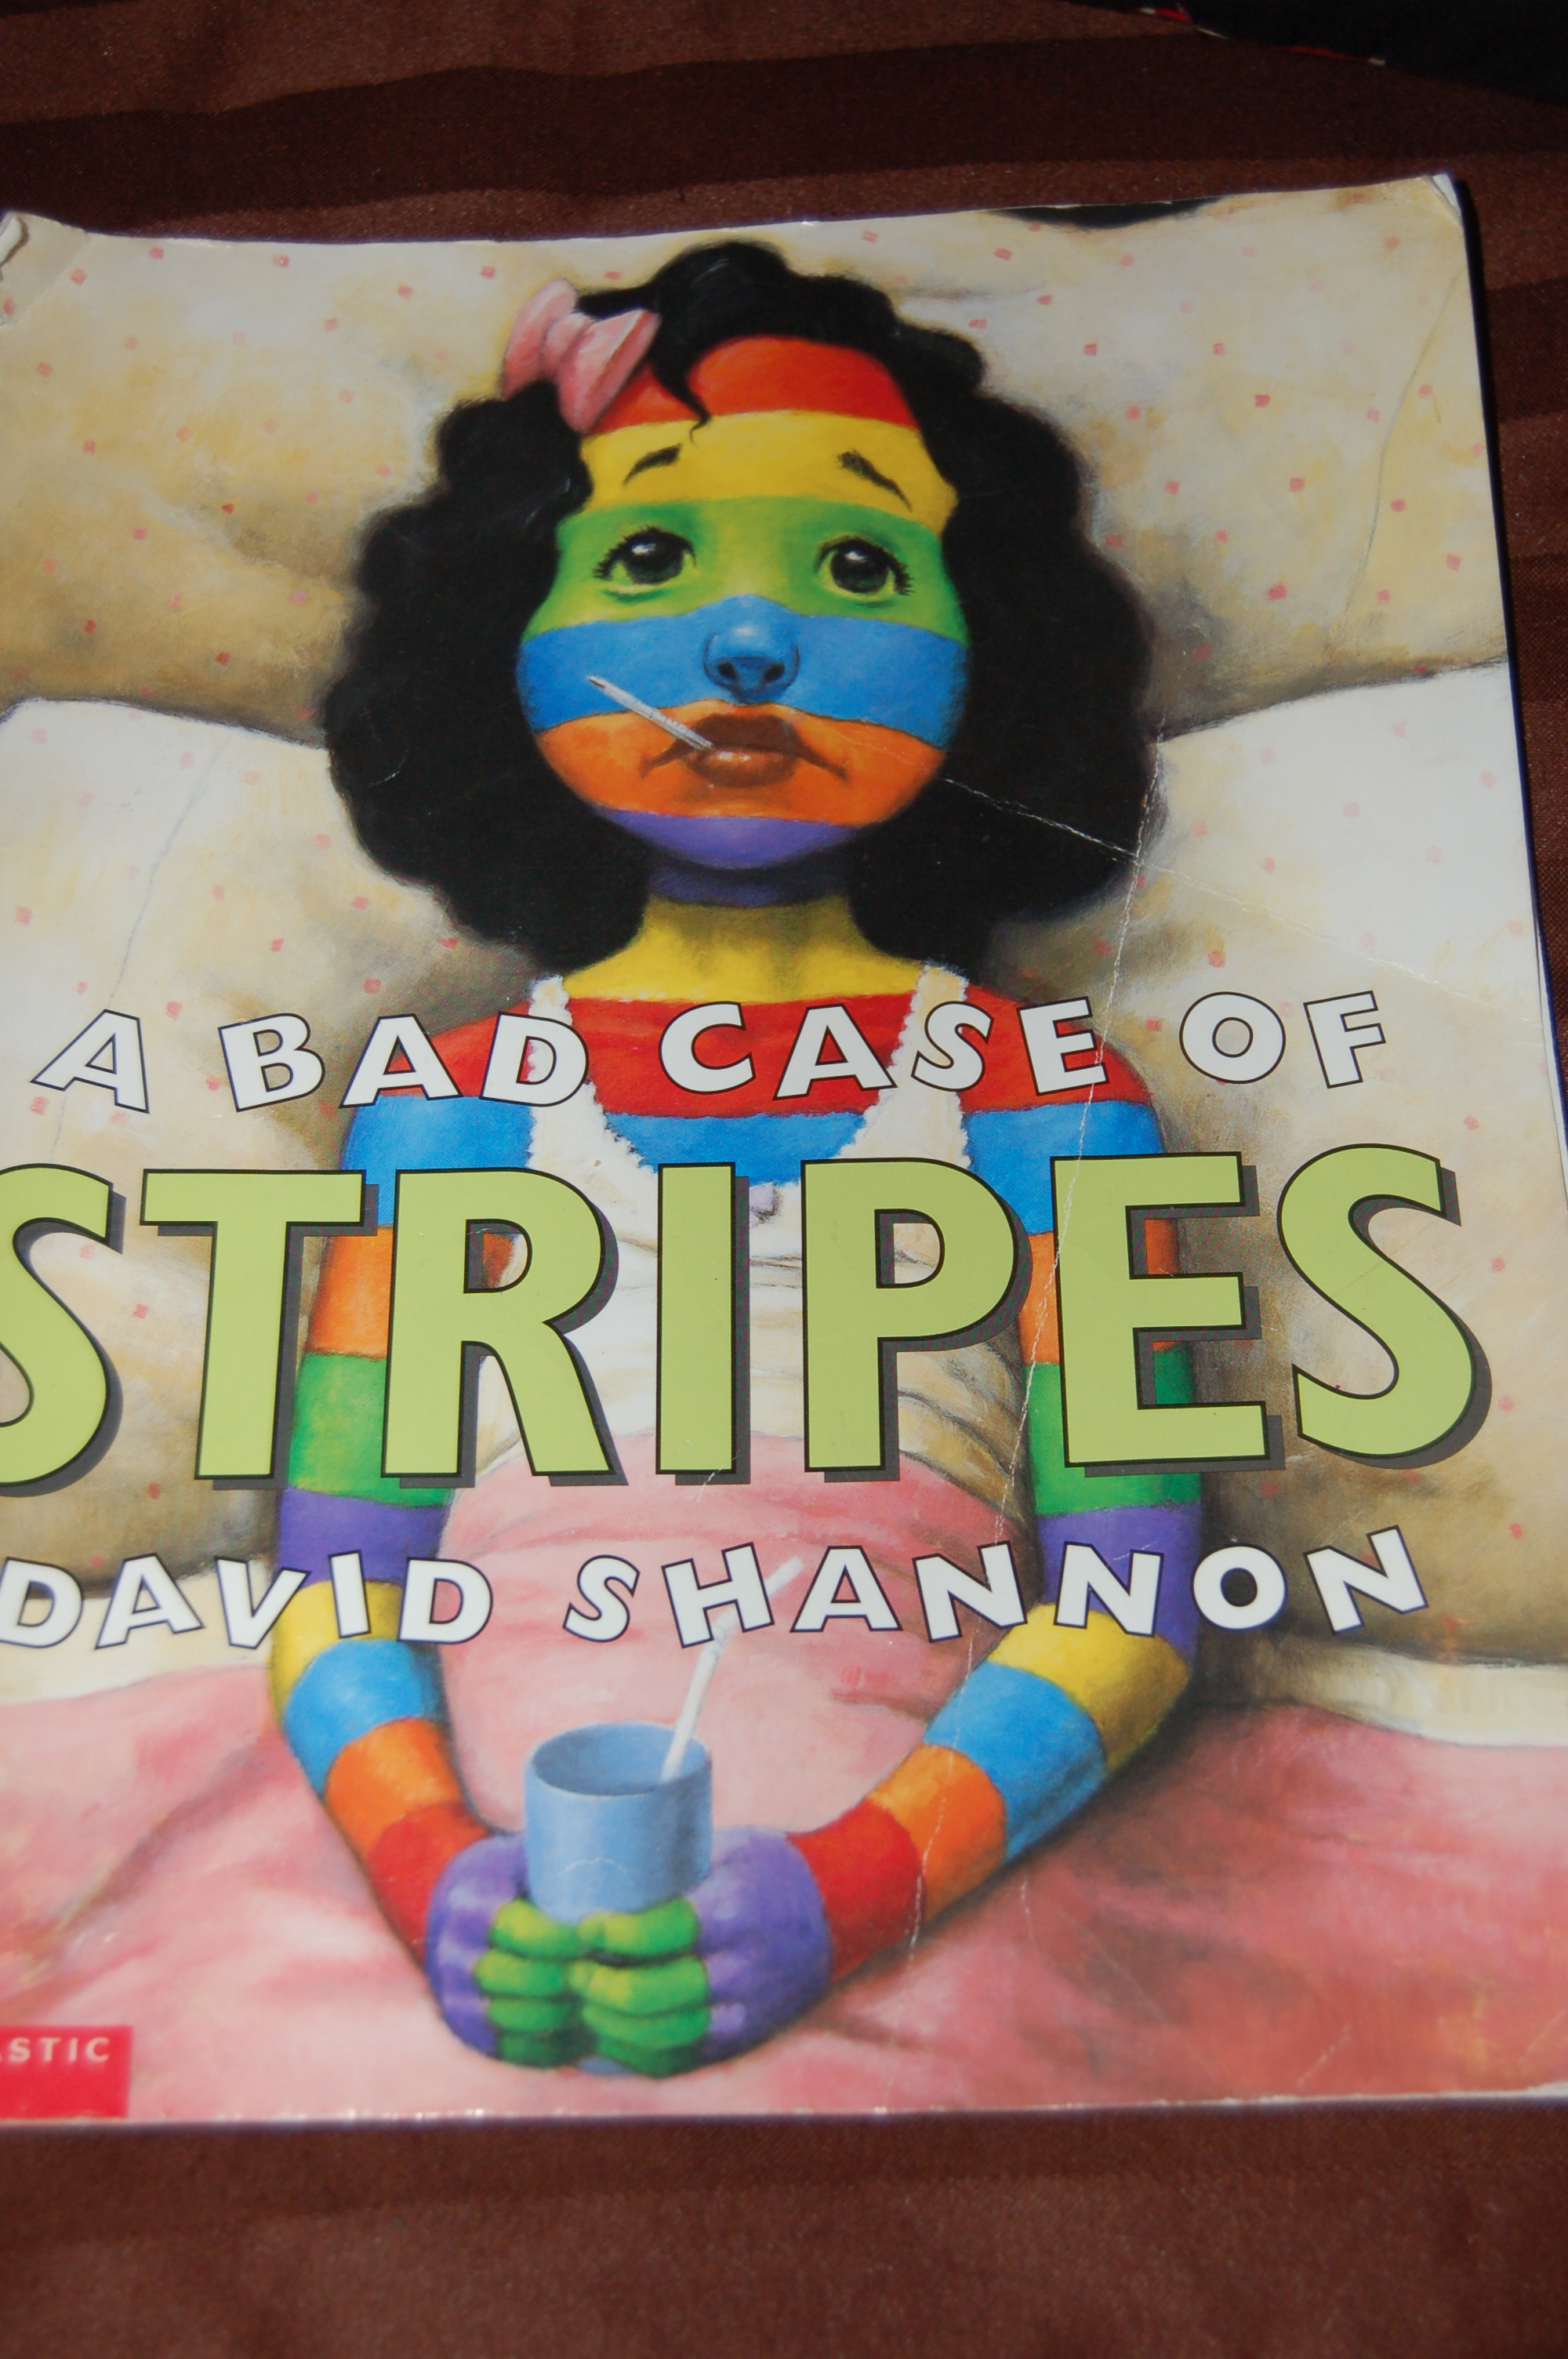 a bad case Summary a bad case of stripes by david shannon this outrageous story about a girl who develops a bad case of the stripes will easily keep students entertained while they work to develop key comprehension skills including how to ask questions, make logical predictions, and make meaningful connections while reading.